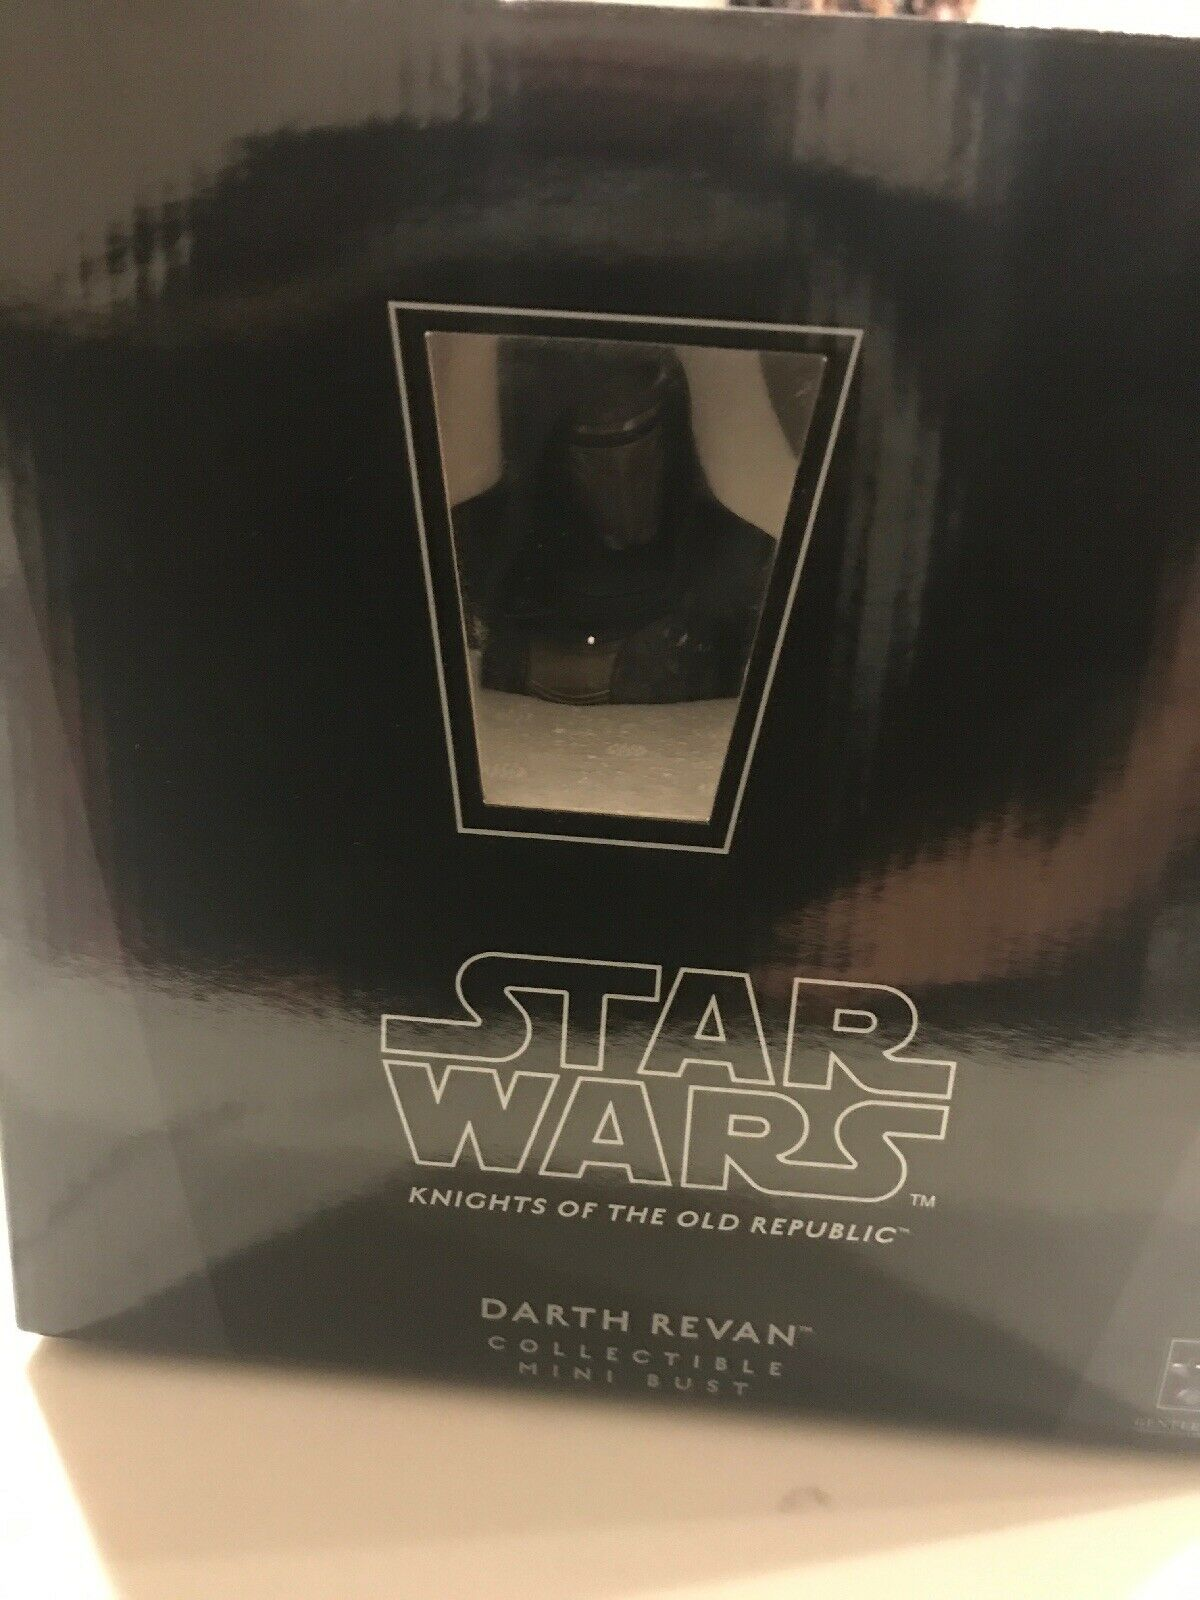 STAR WARS Gentle Giant Darth Revan 1926 3850 Mini Bust Exclusive